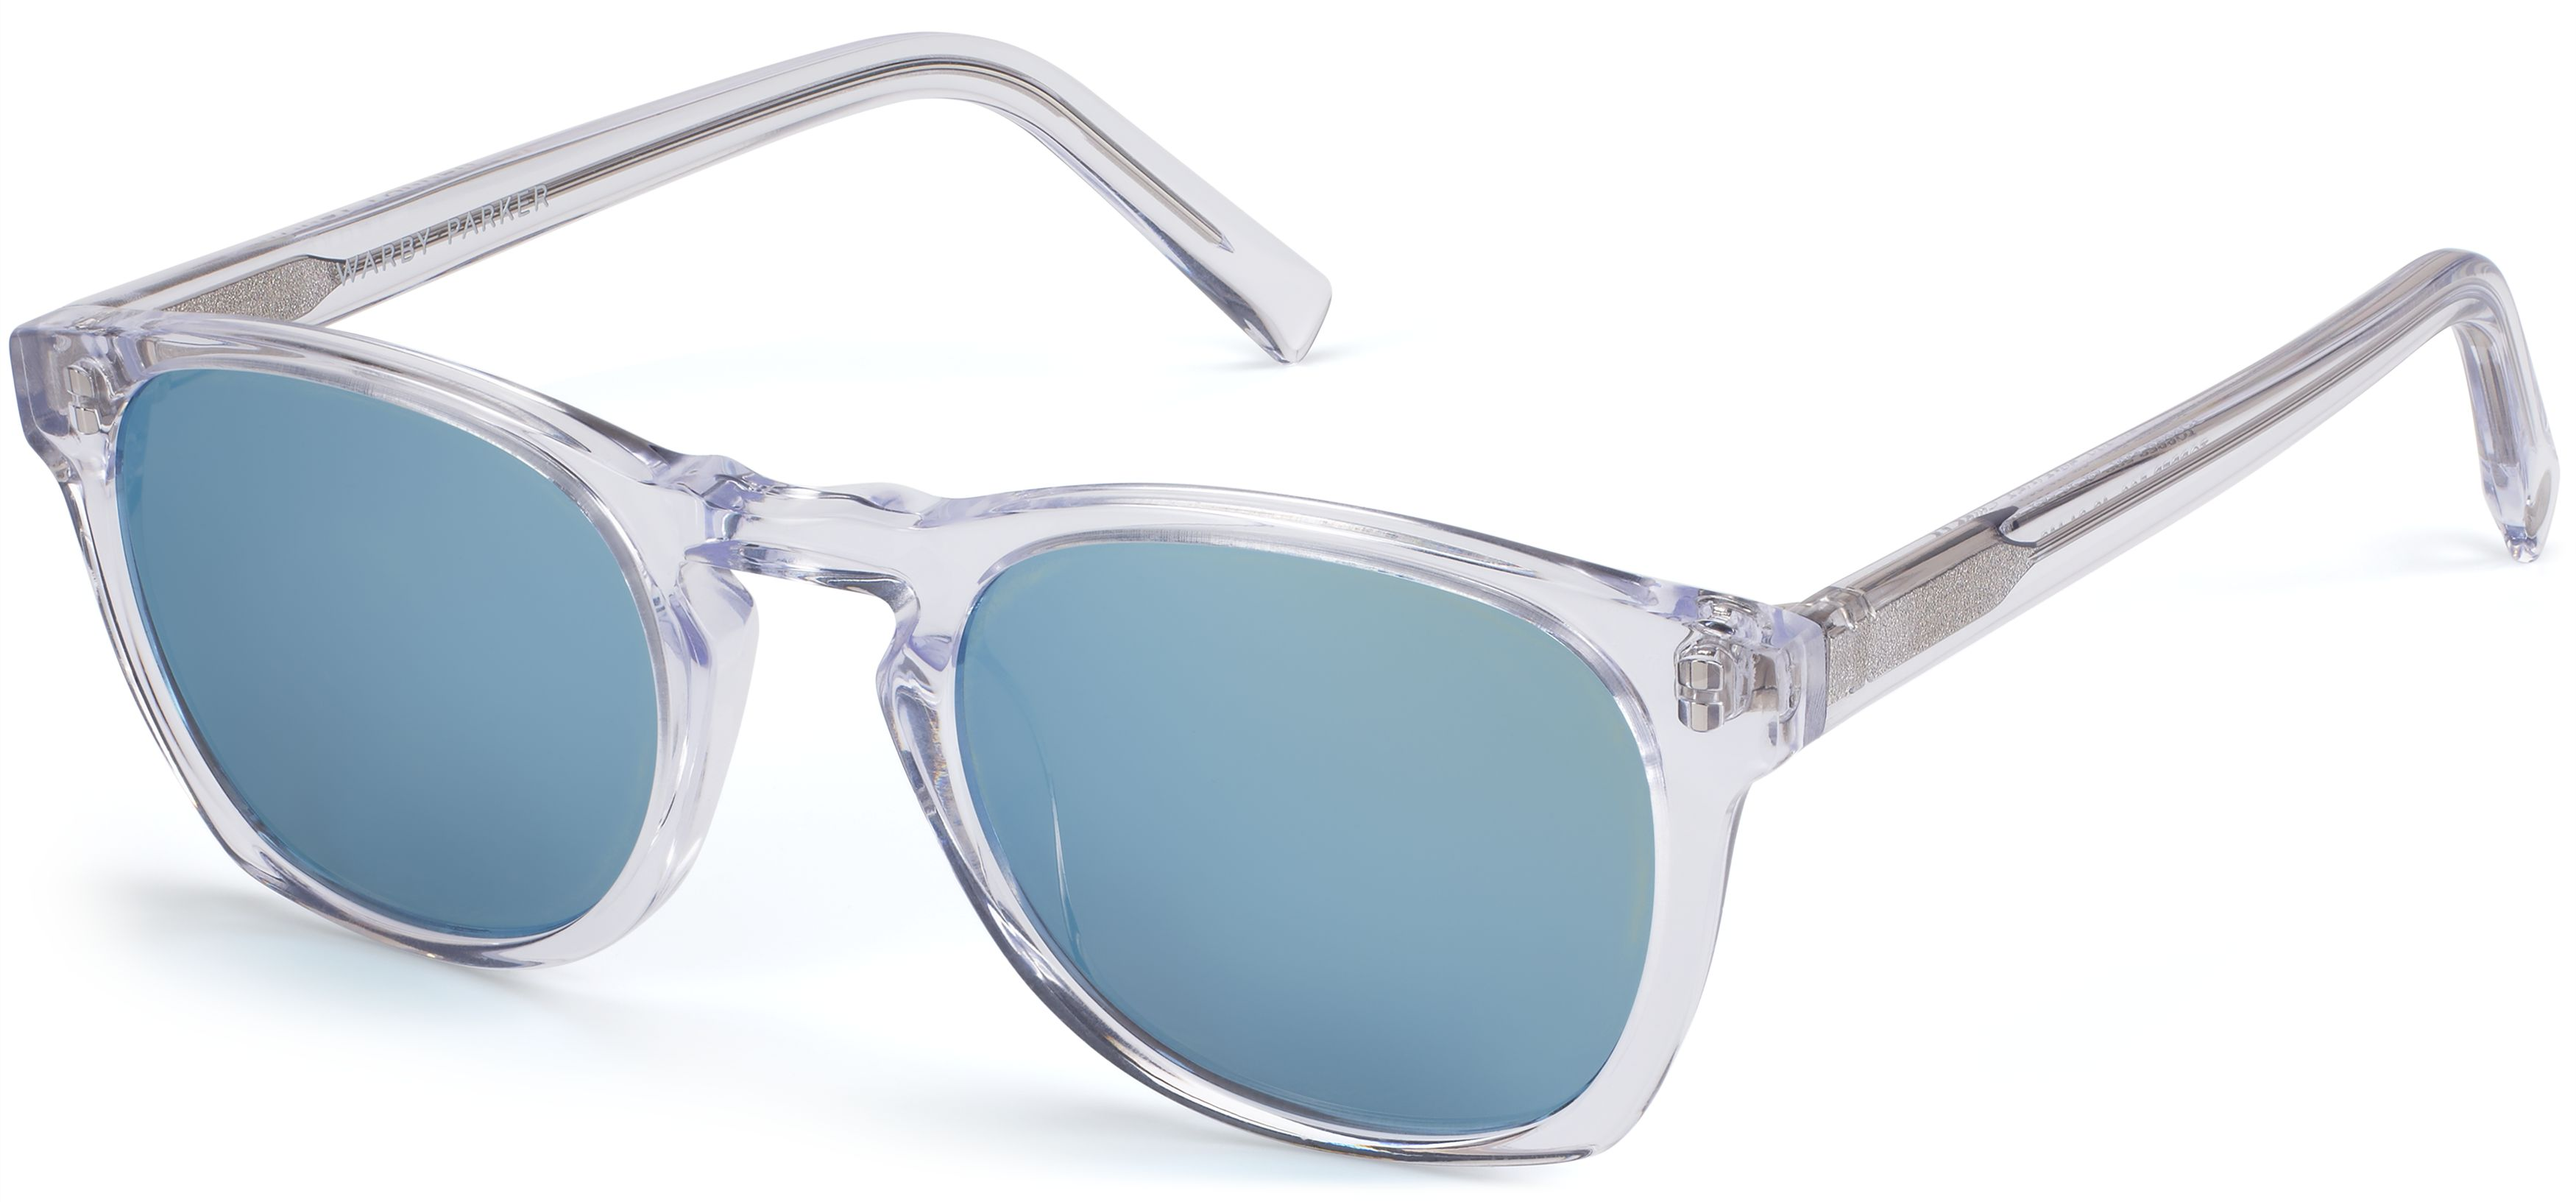 981a5ba614 Topper Sunglasses in Crystal with Flash Mirrored Pacific Blue lenses for Men